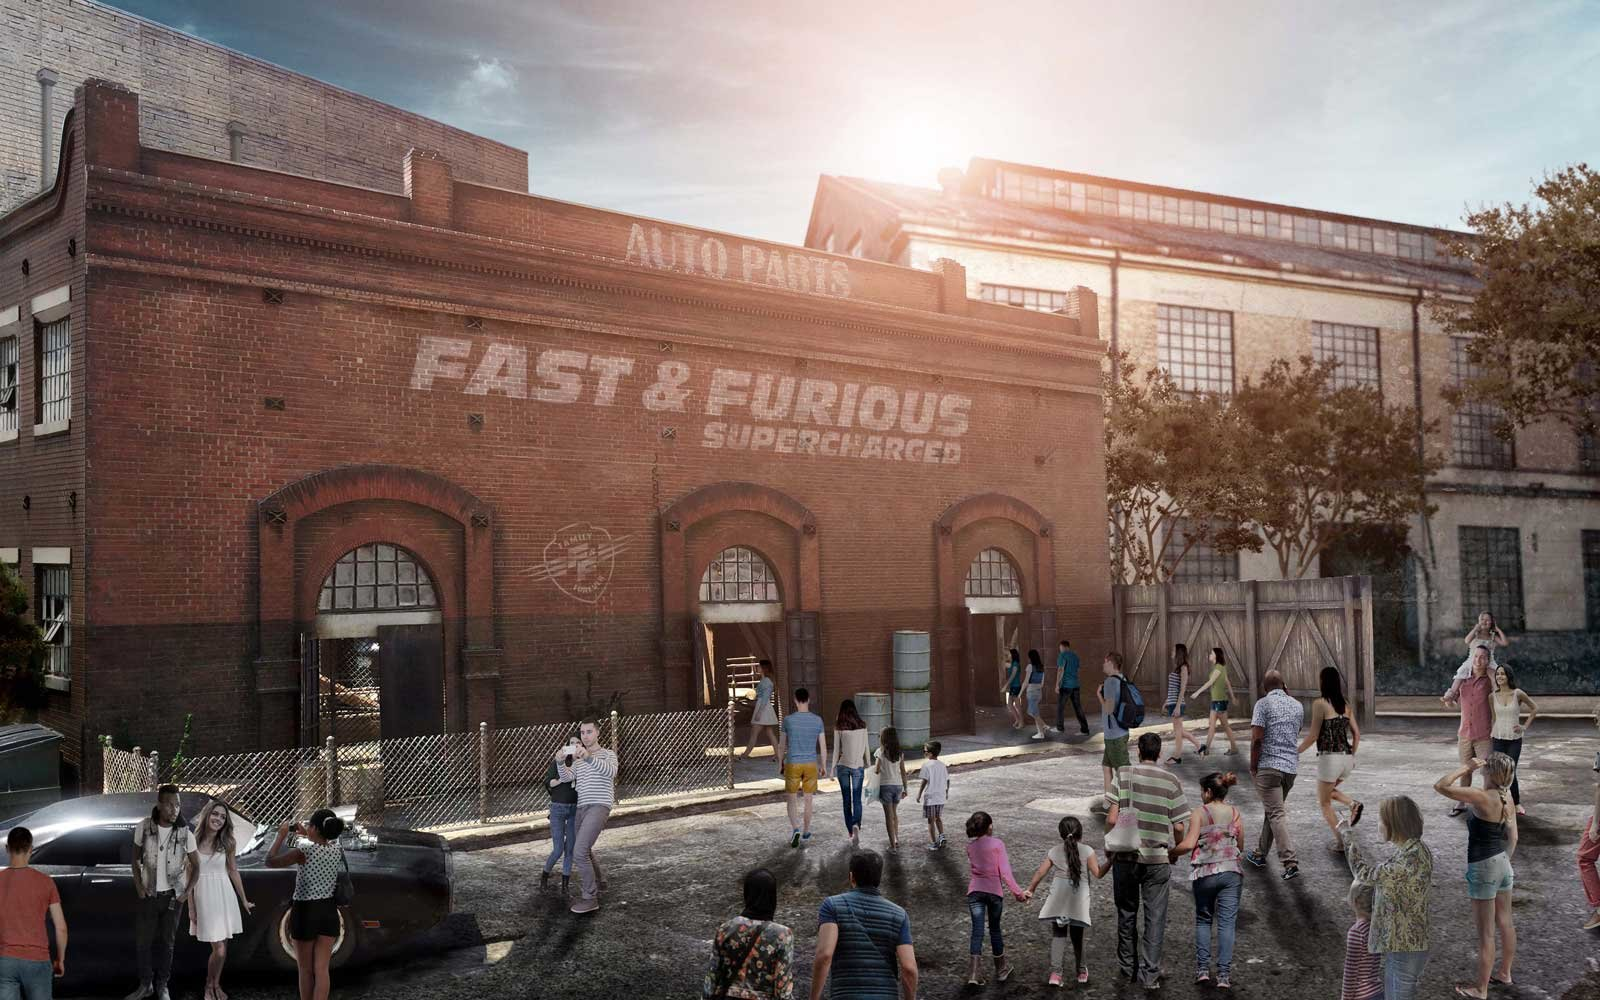 Rendering of the Fast and the Furious Supercharged ride coming to Universal Studios in 2018